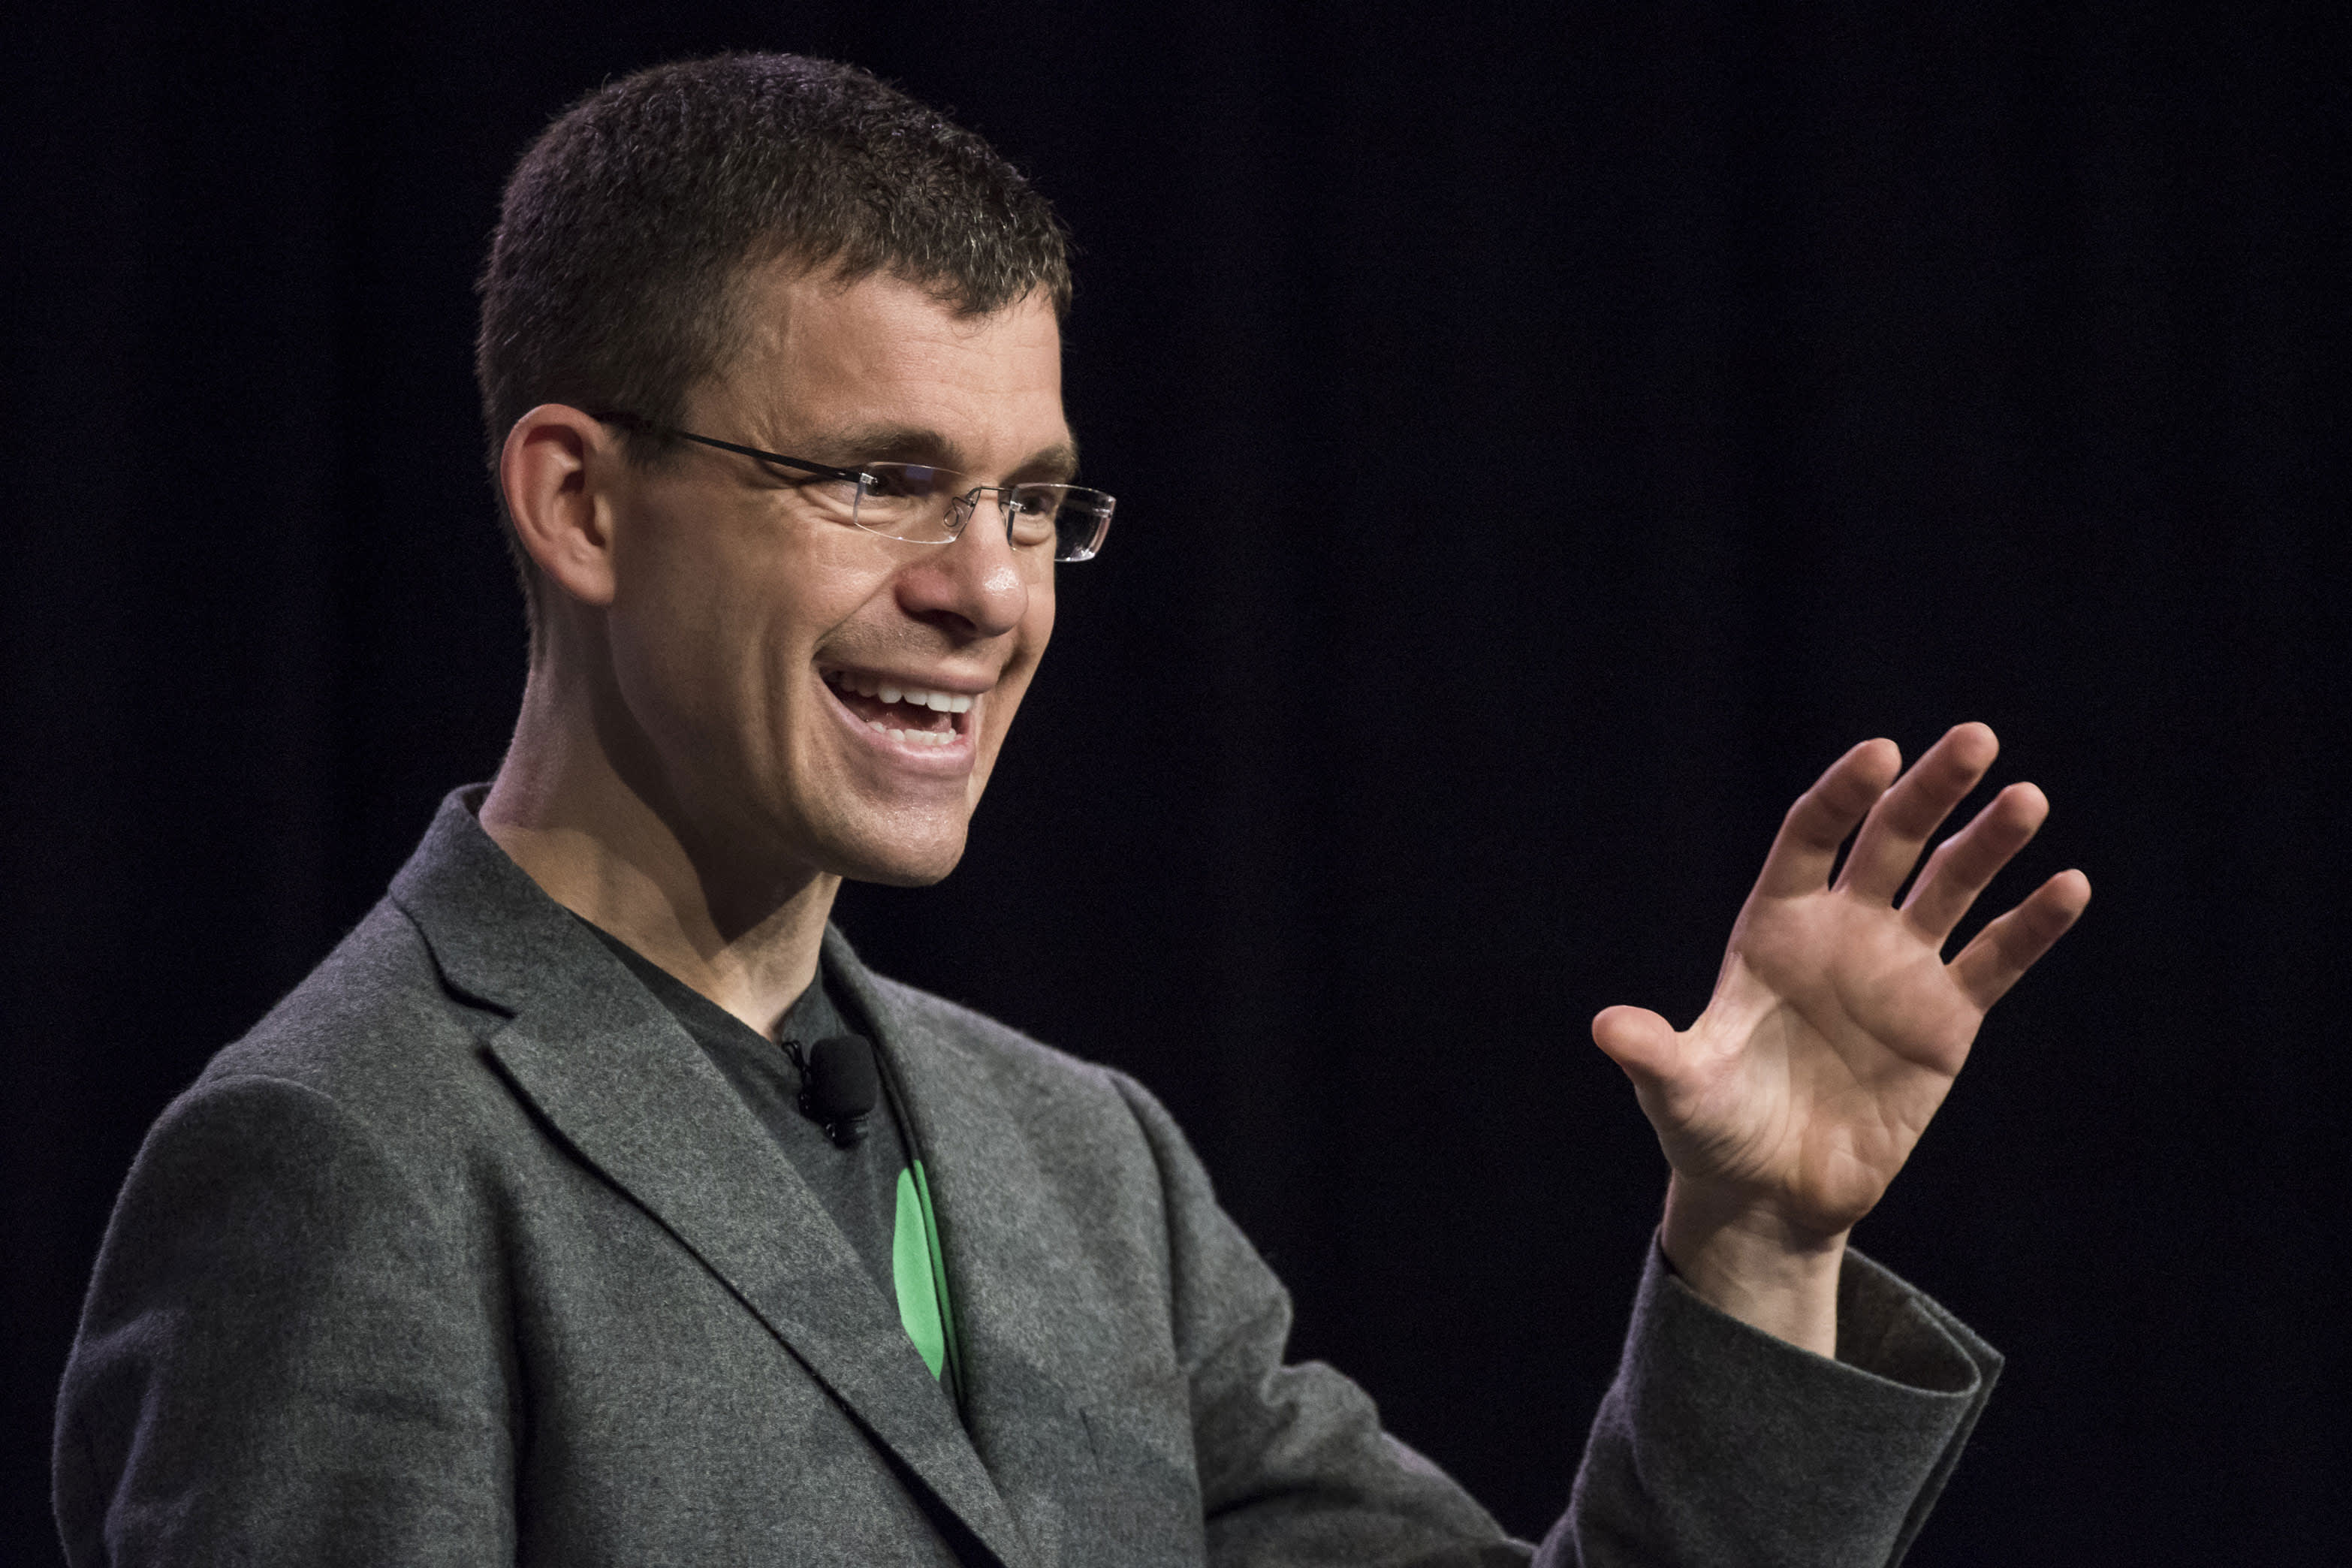 Watch CNBC's full interview with Affirm CEO Max Levchin